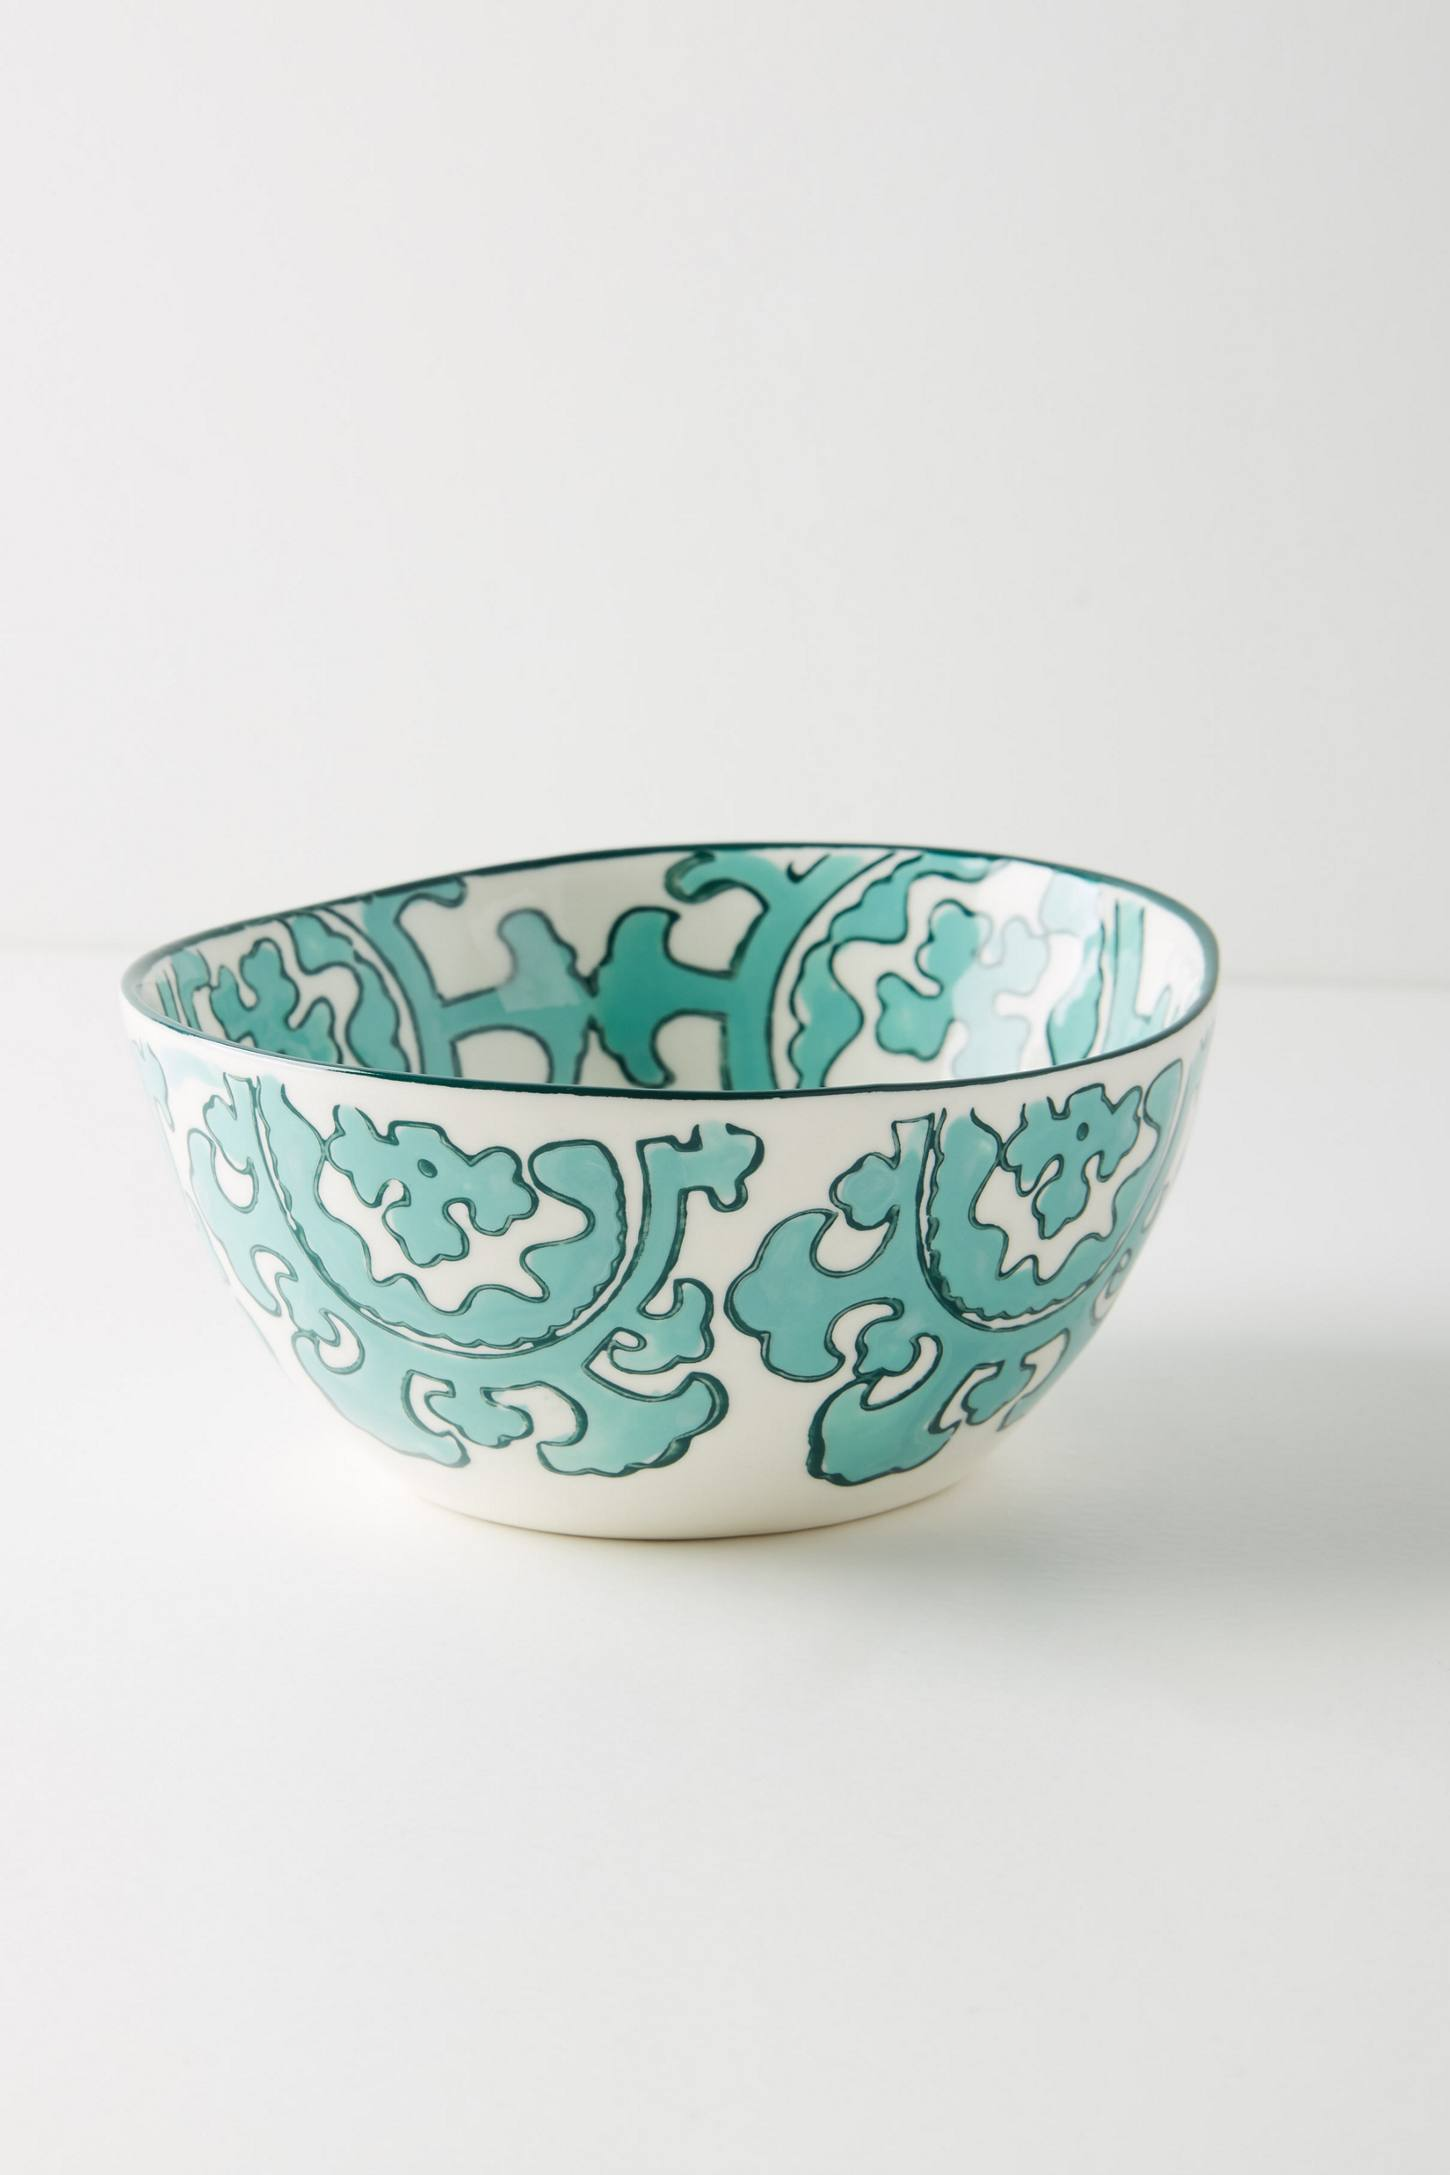 Slide View: 1: Gloriosa Cereal Bowl